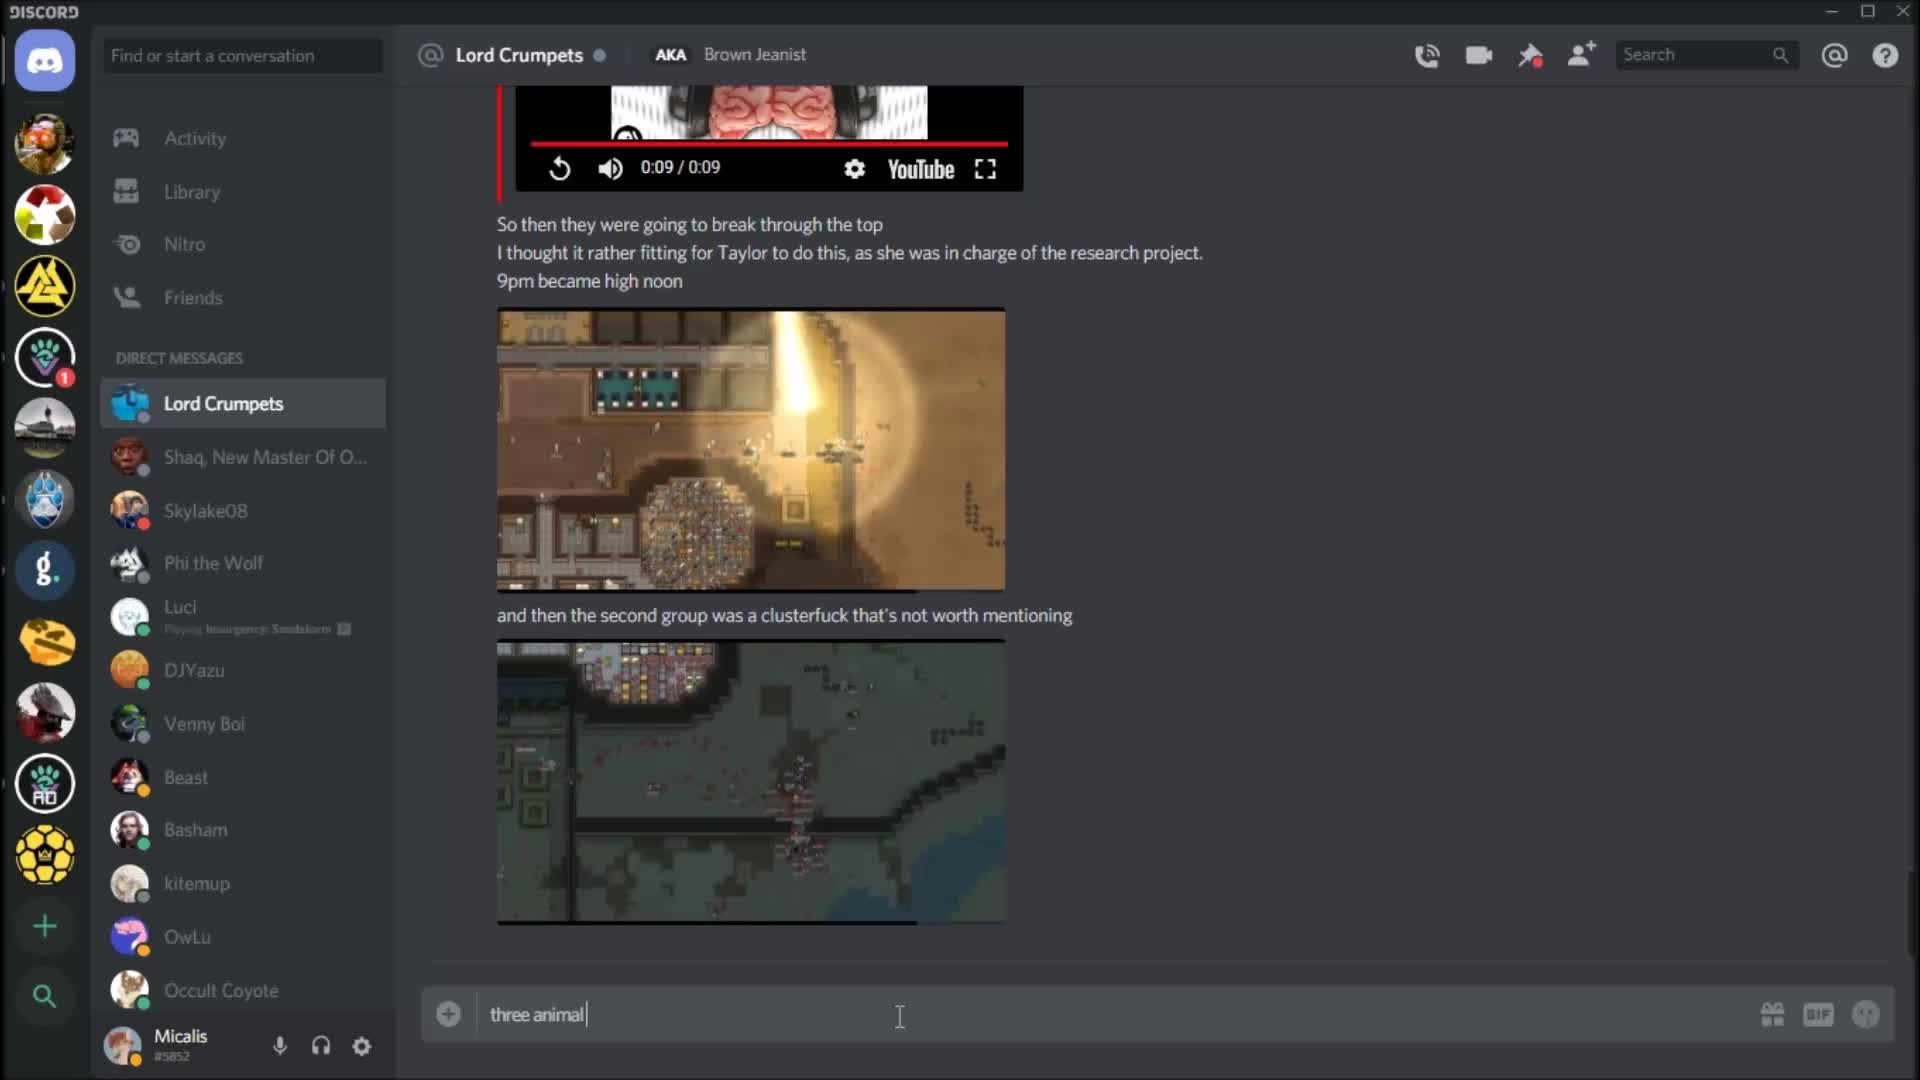 Osrs Raids Guide Gifs Search | Search & Share on Homdor